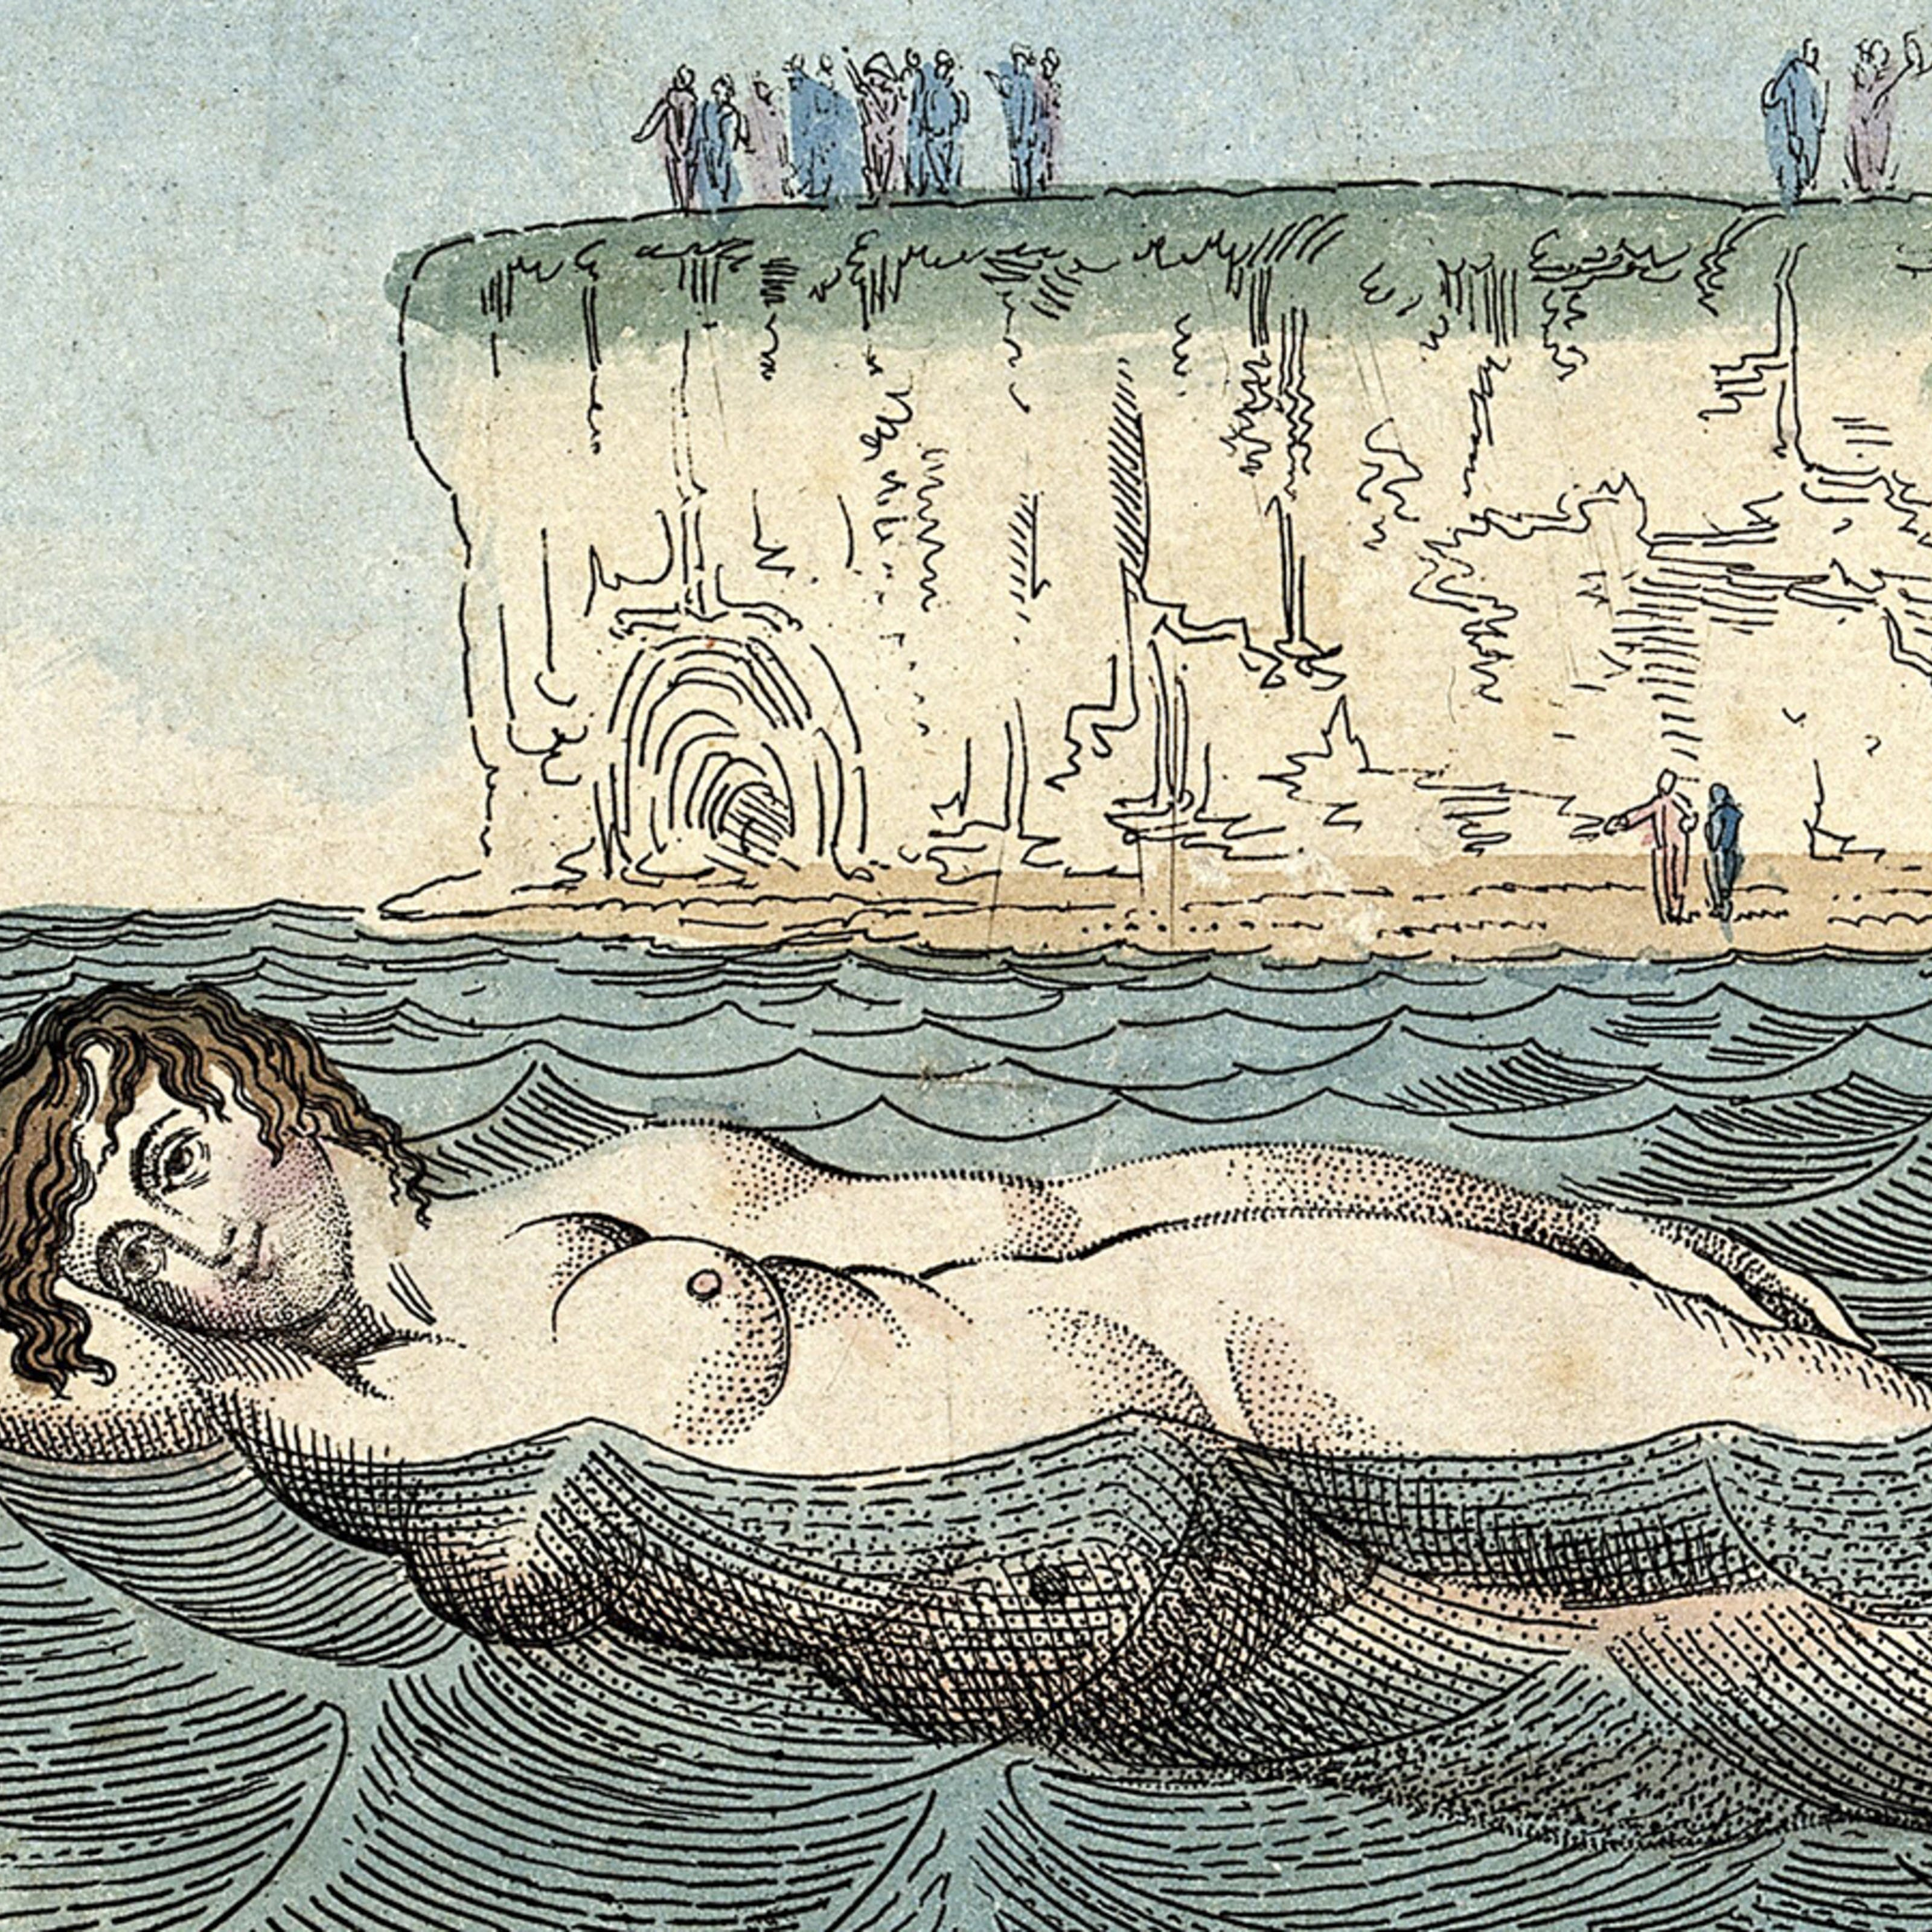 Drawing of a naked woman swimming in the sea, as distant figures stand on a cliff in the background